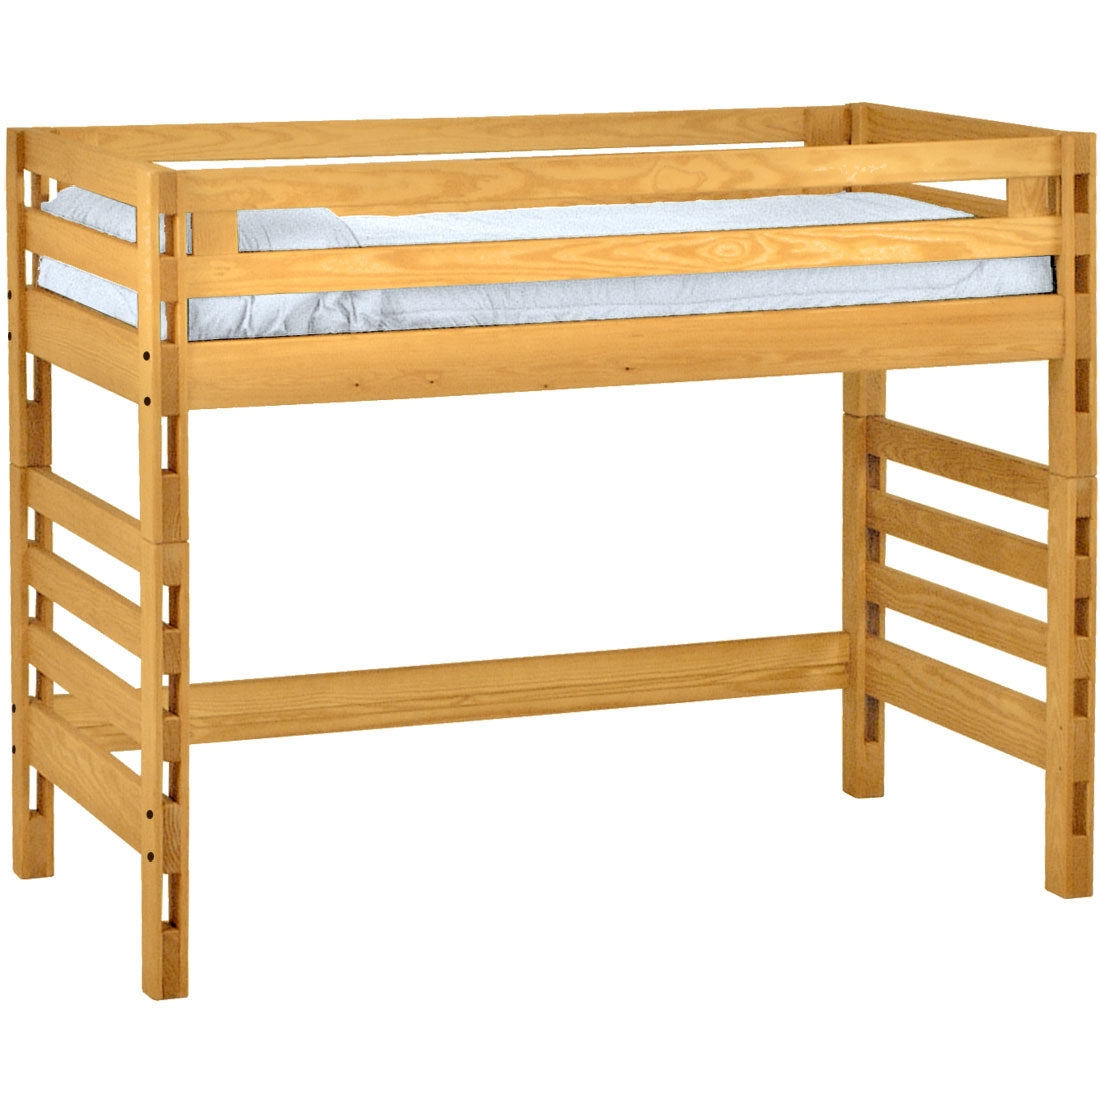 Ladder End Loft Bed Twin Size Crate Designs Furniture